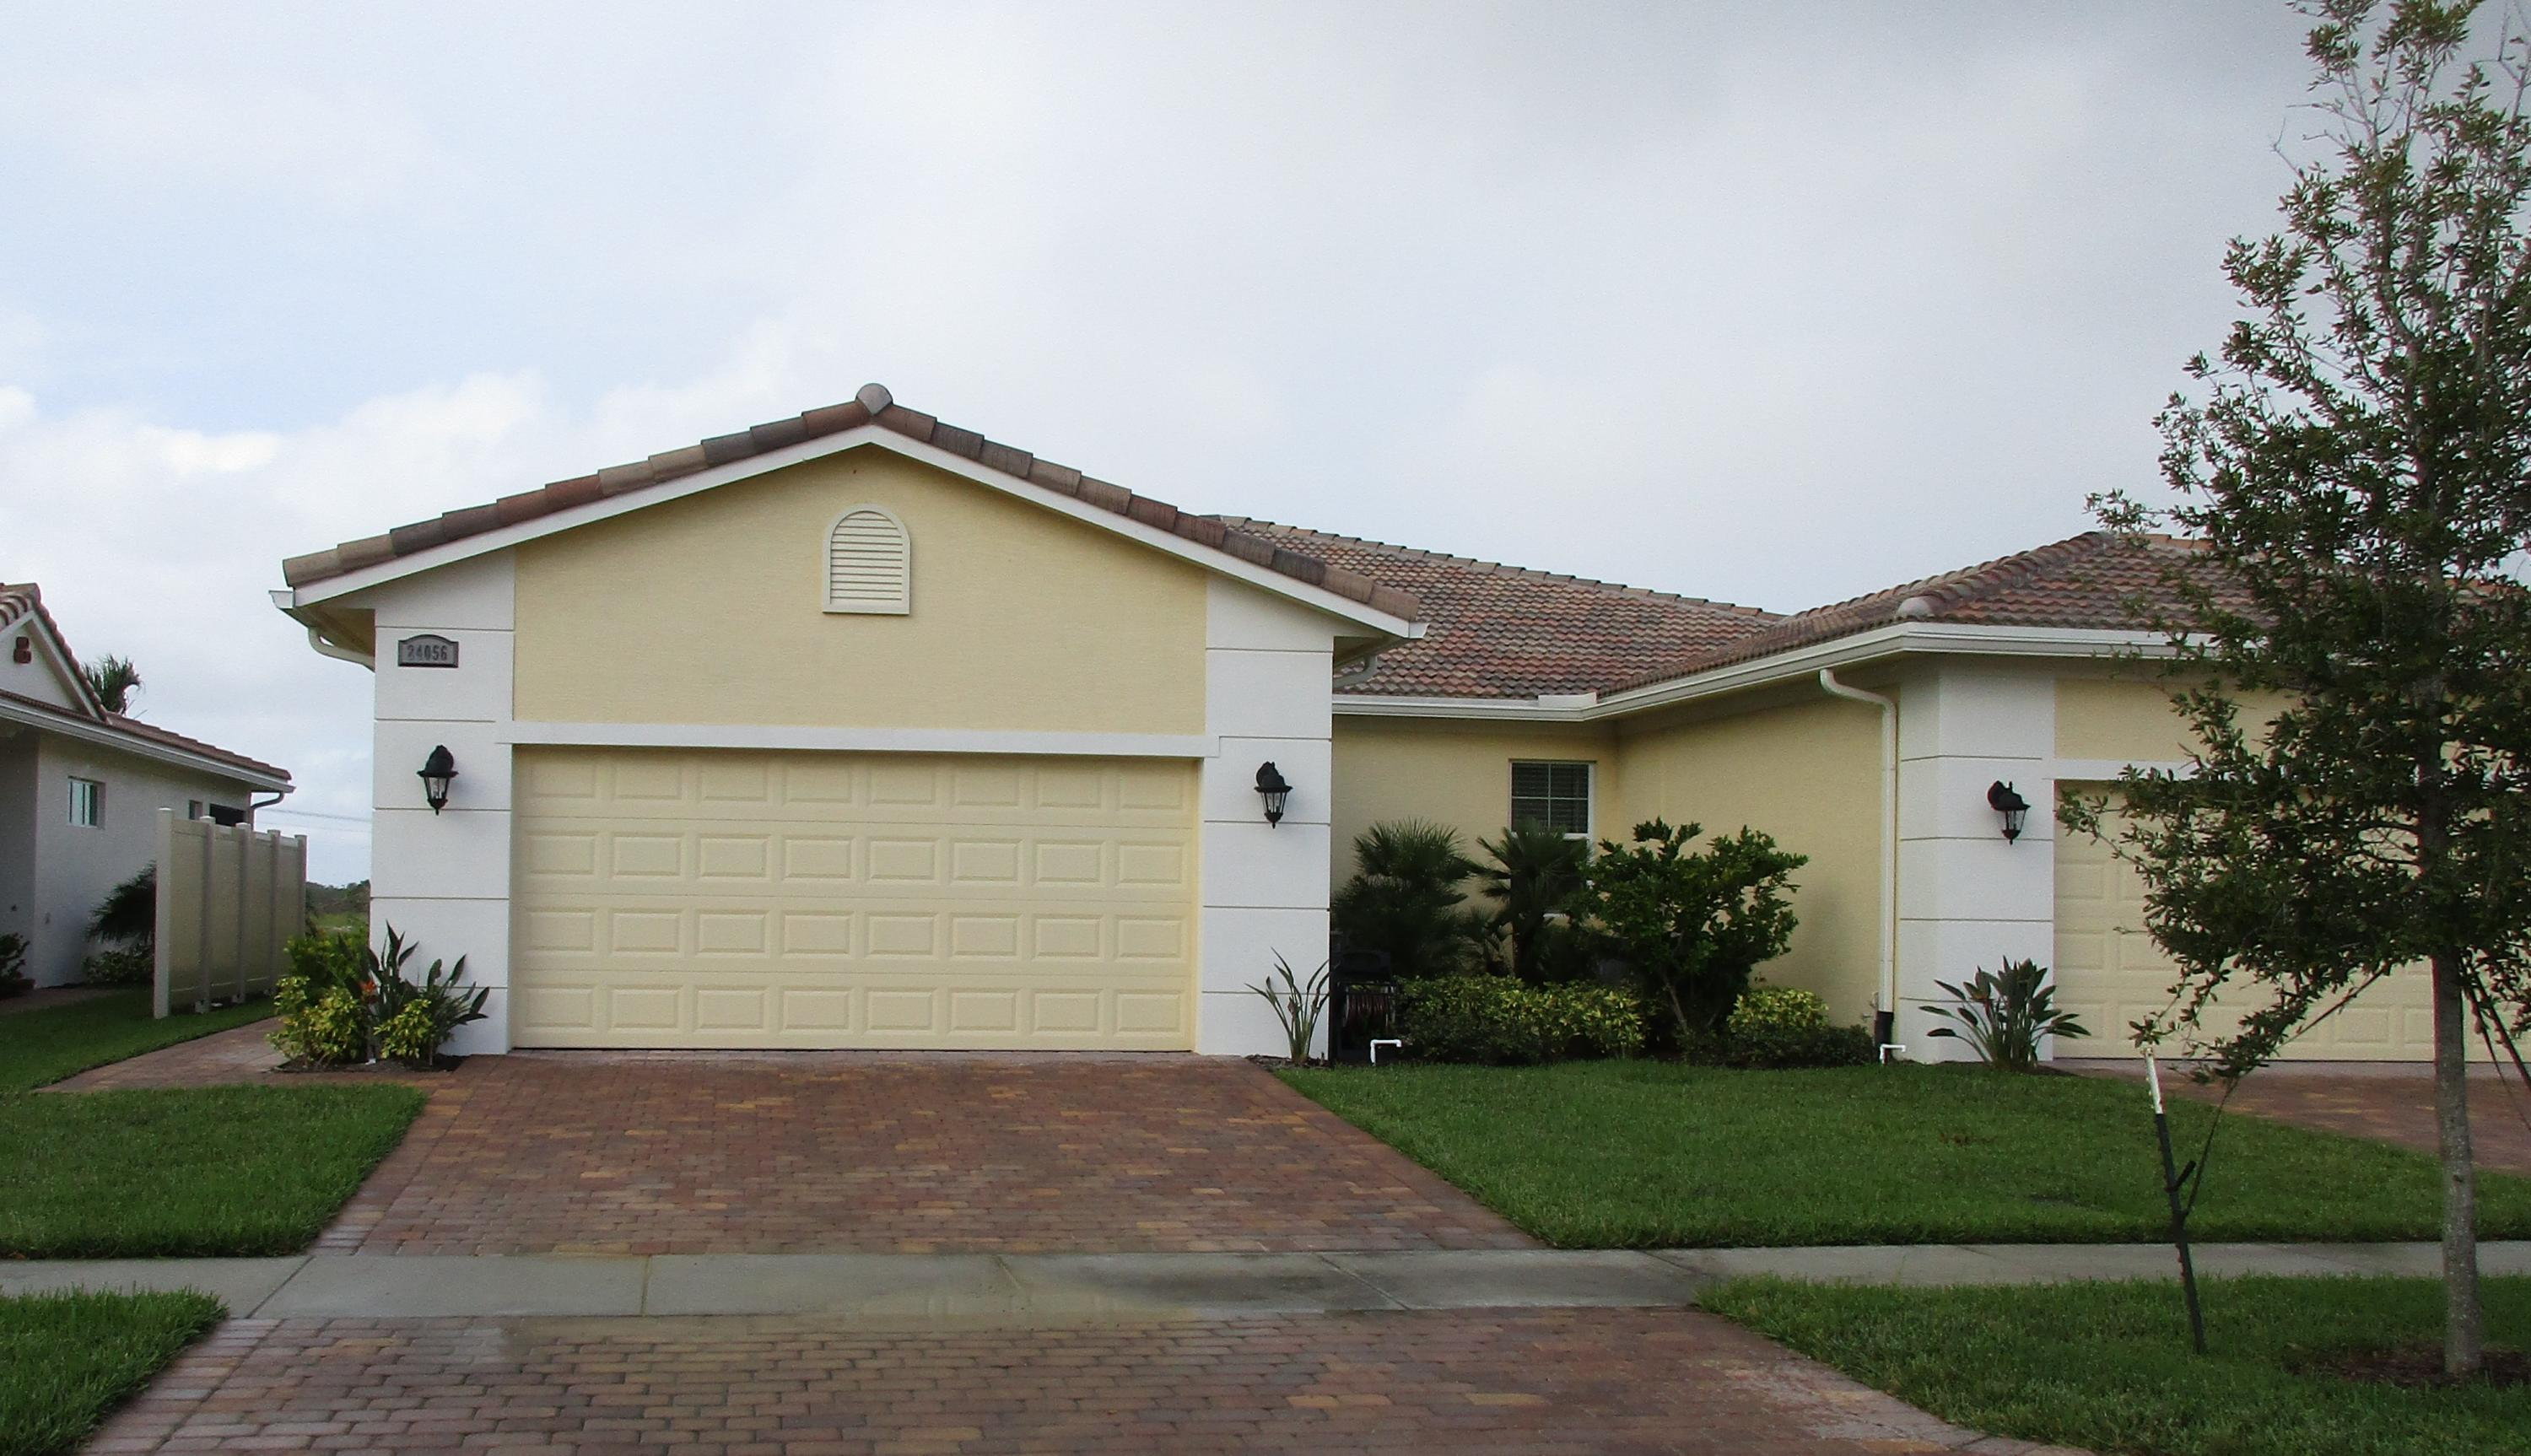 24056 Sw Firenze Way, Port Saint Lucie, FL 34986